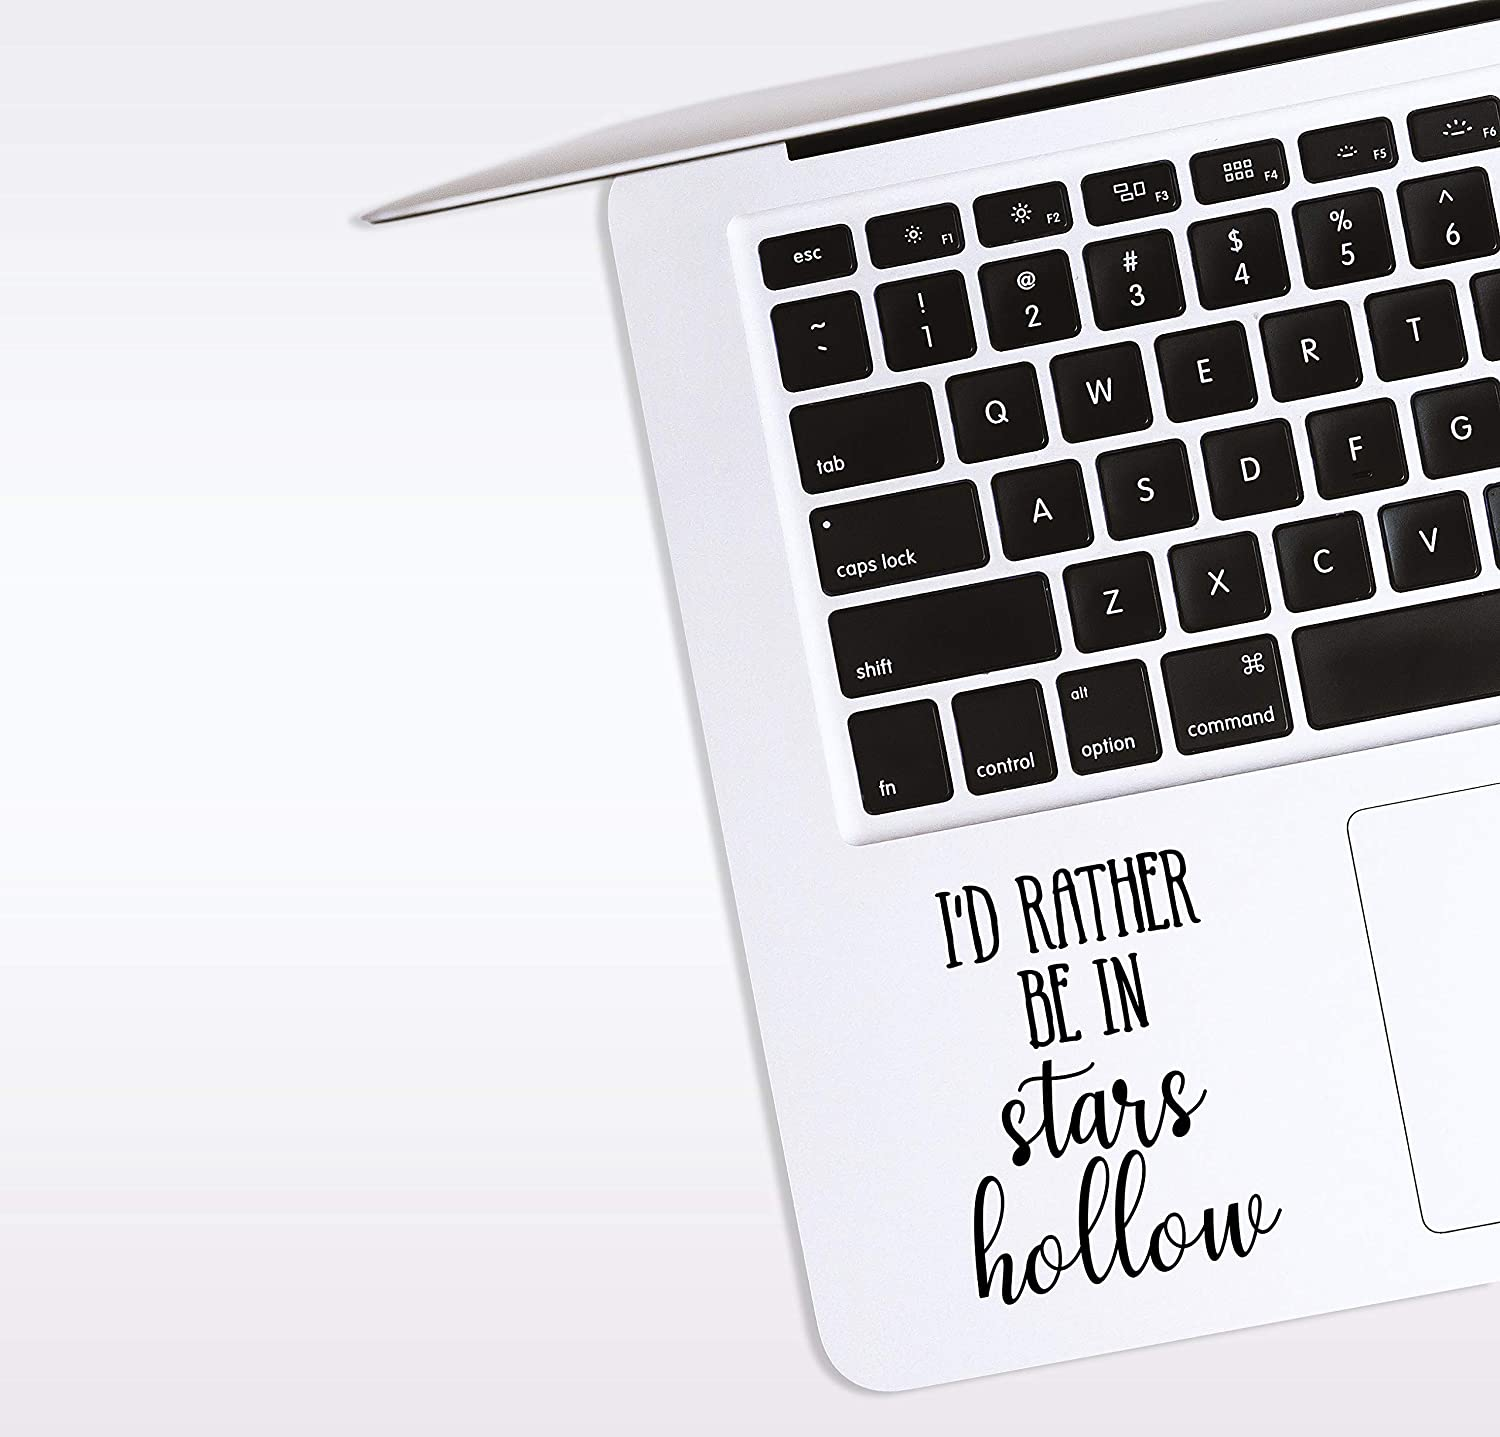 World Design Rather Be in Stars Hollow Laptop Corner Decal